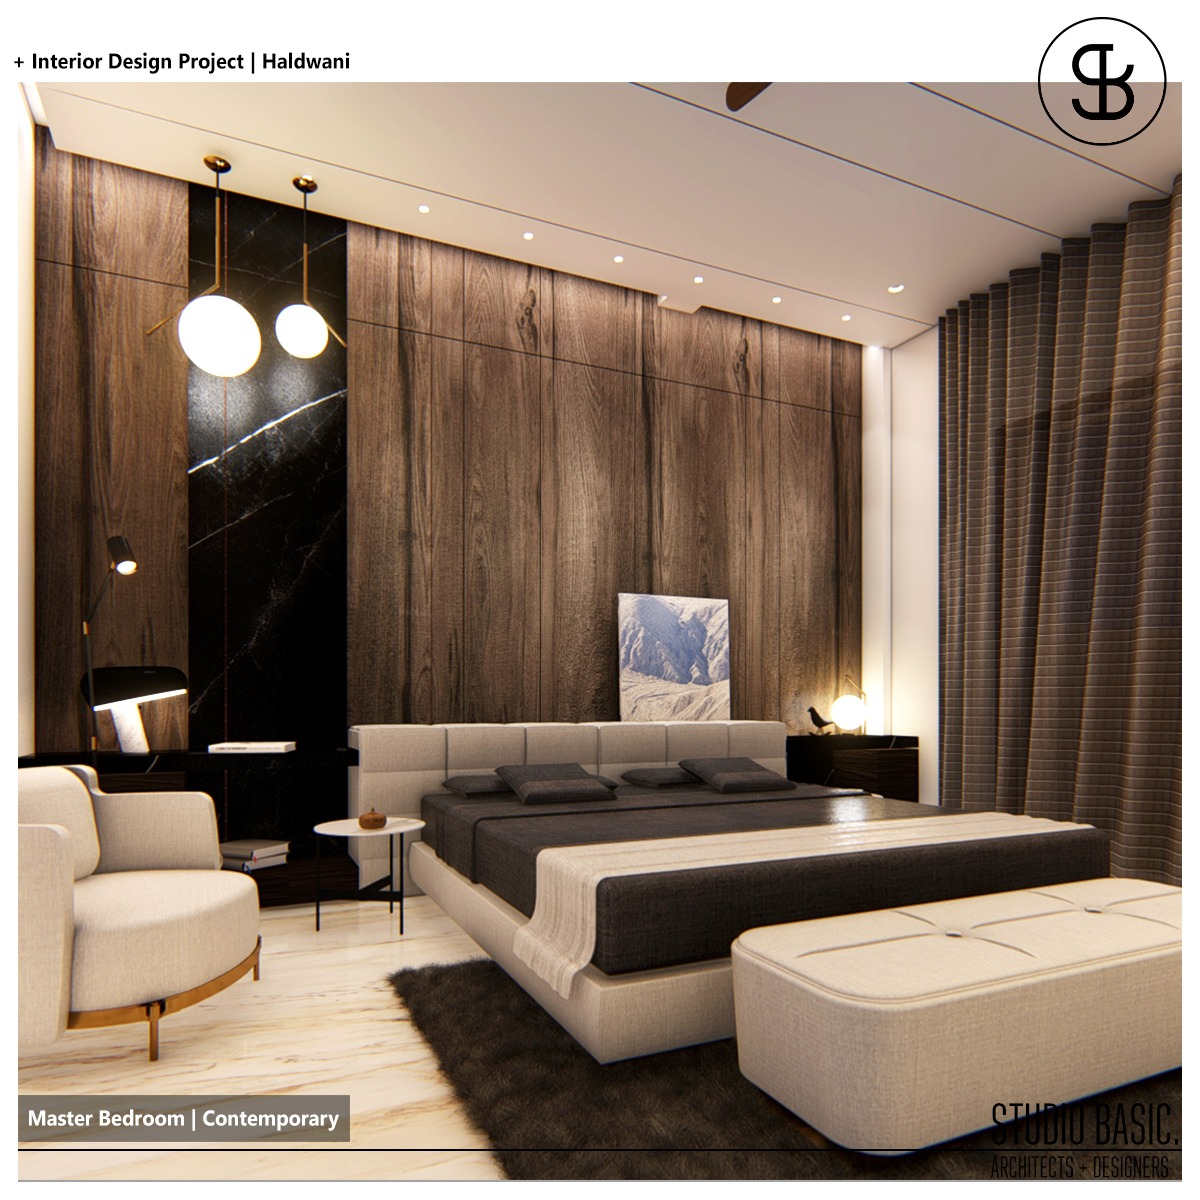 Master Bedroom Design-	STUDIO BASIC AD LLP